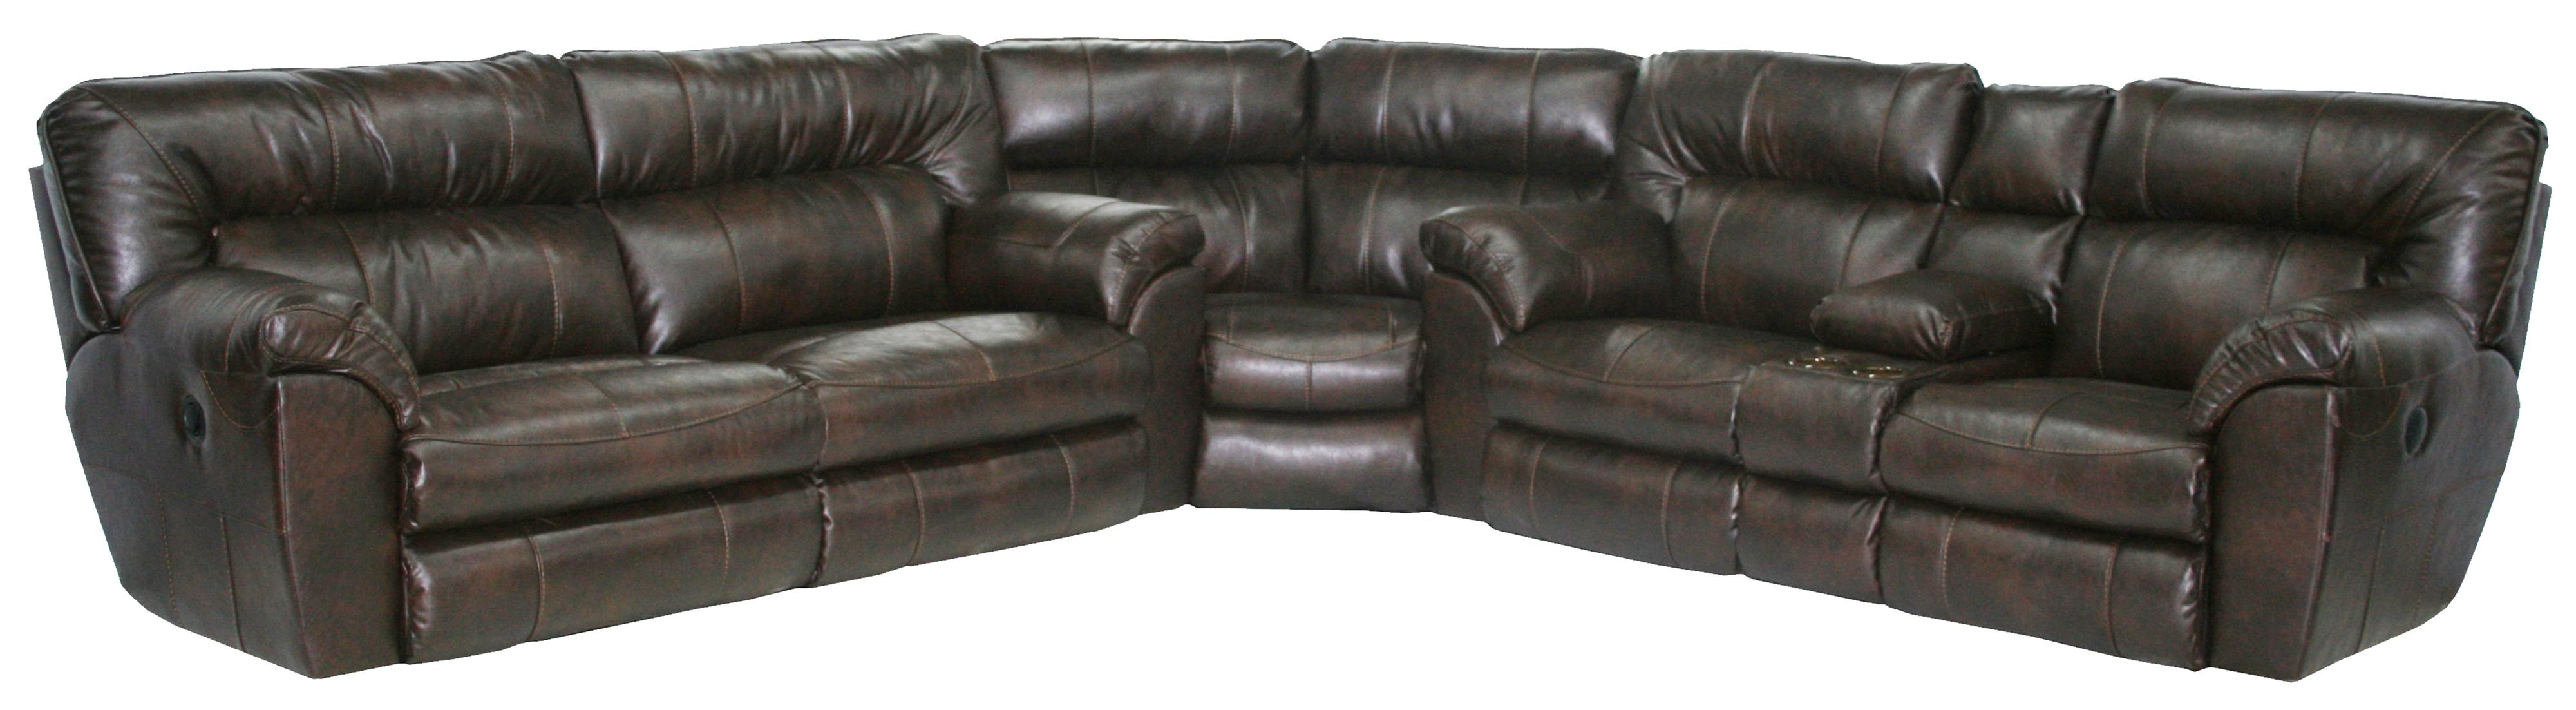 Power Reclining Sectional Sofa With Left Consolecatnapper Throughout Well Liked Sectional Sofas With Consoles (View 7 of 20)